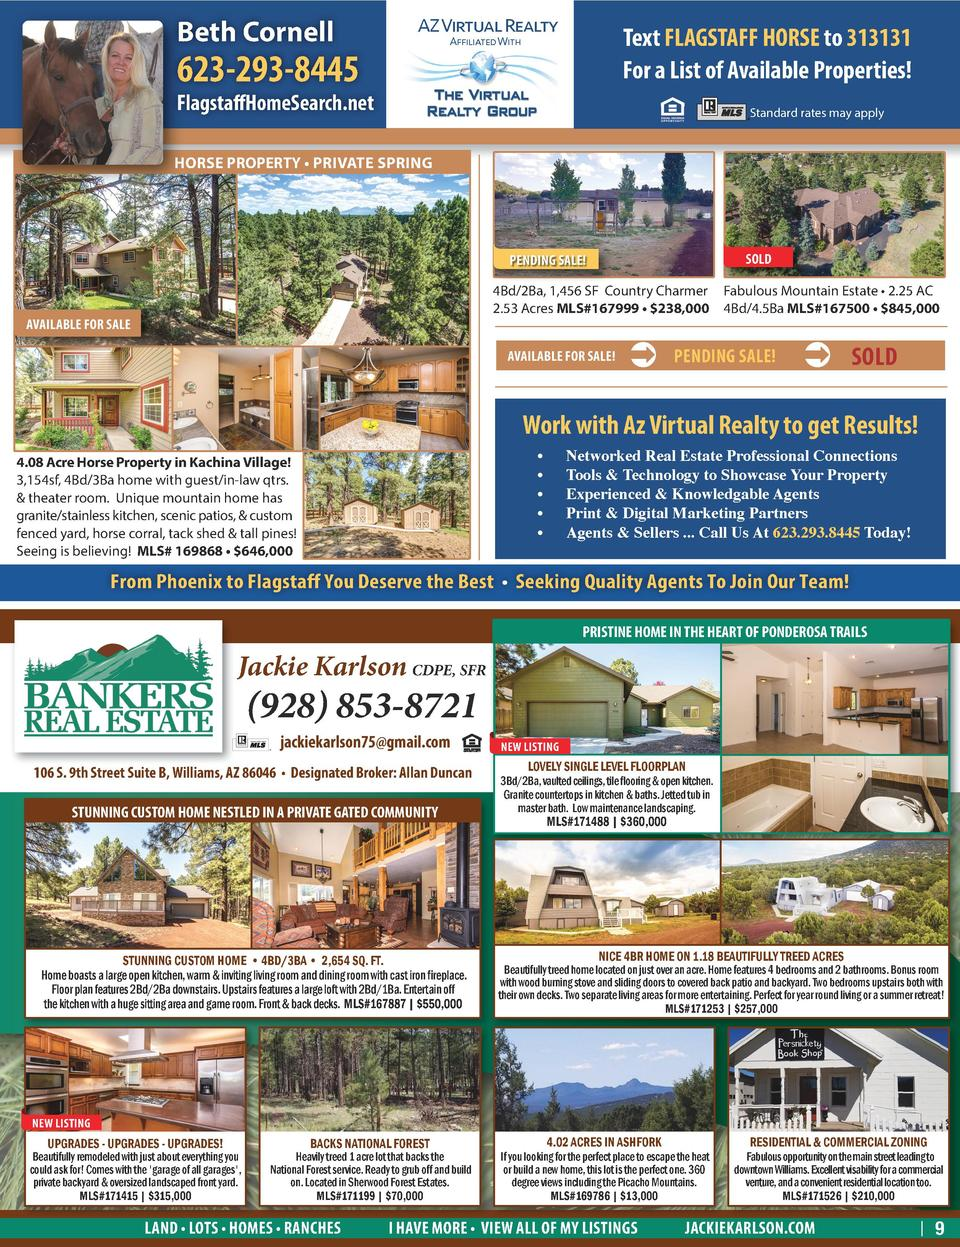 Beth Cornell BACKS NATIONAL FOREST   AZ Virtual Realty  Text FLAGSTAFF HORSE to 313131 For a List of Available Properties ...